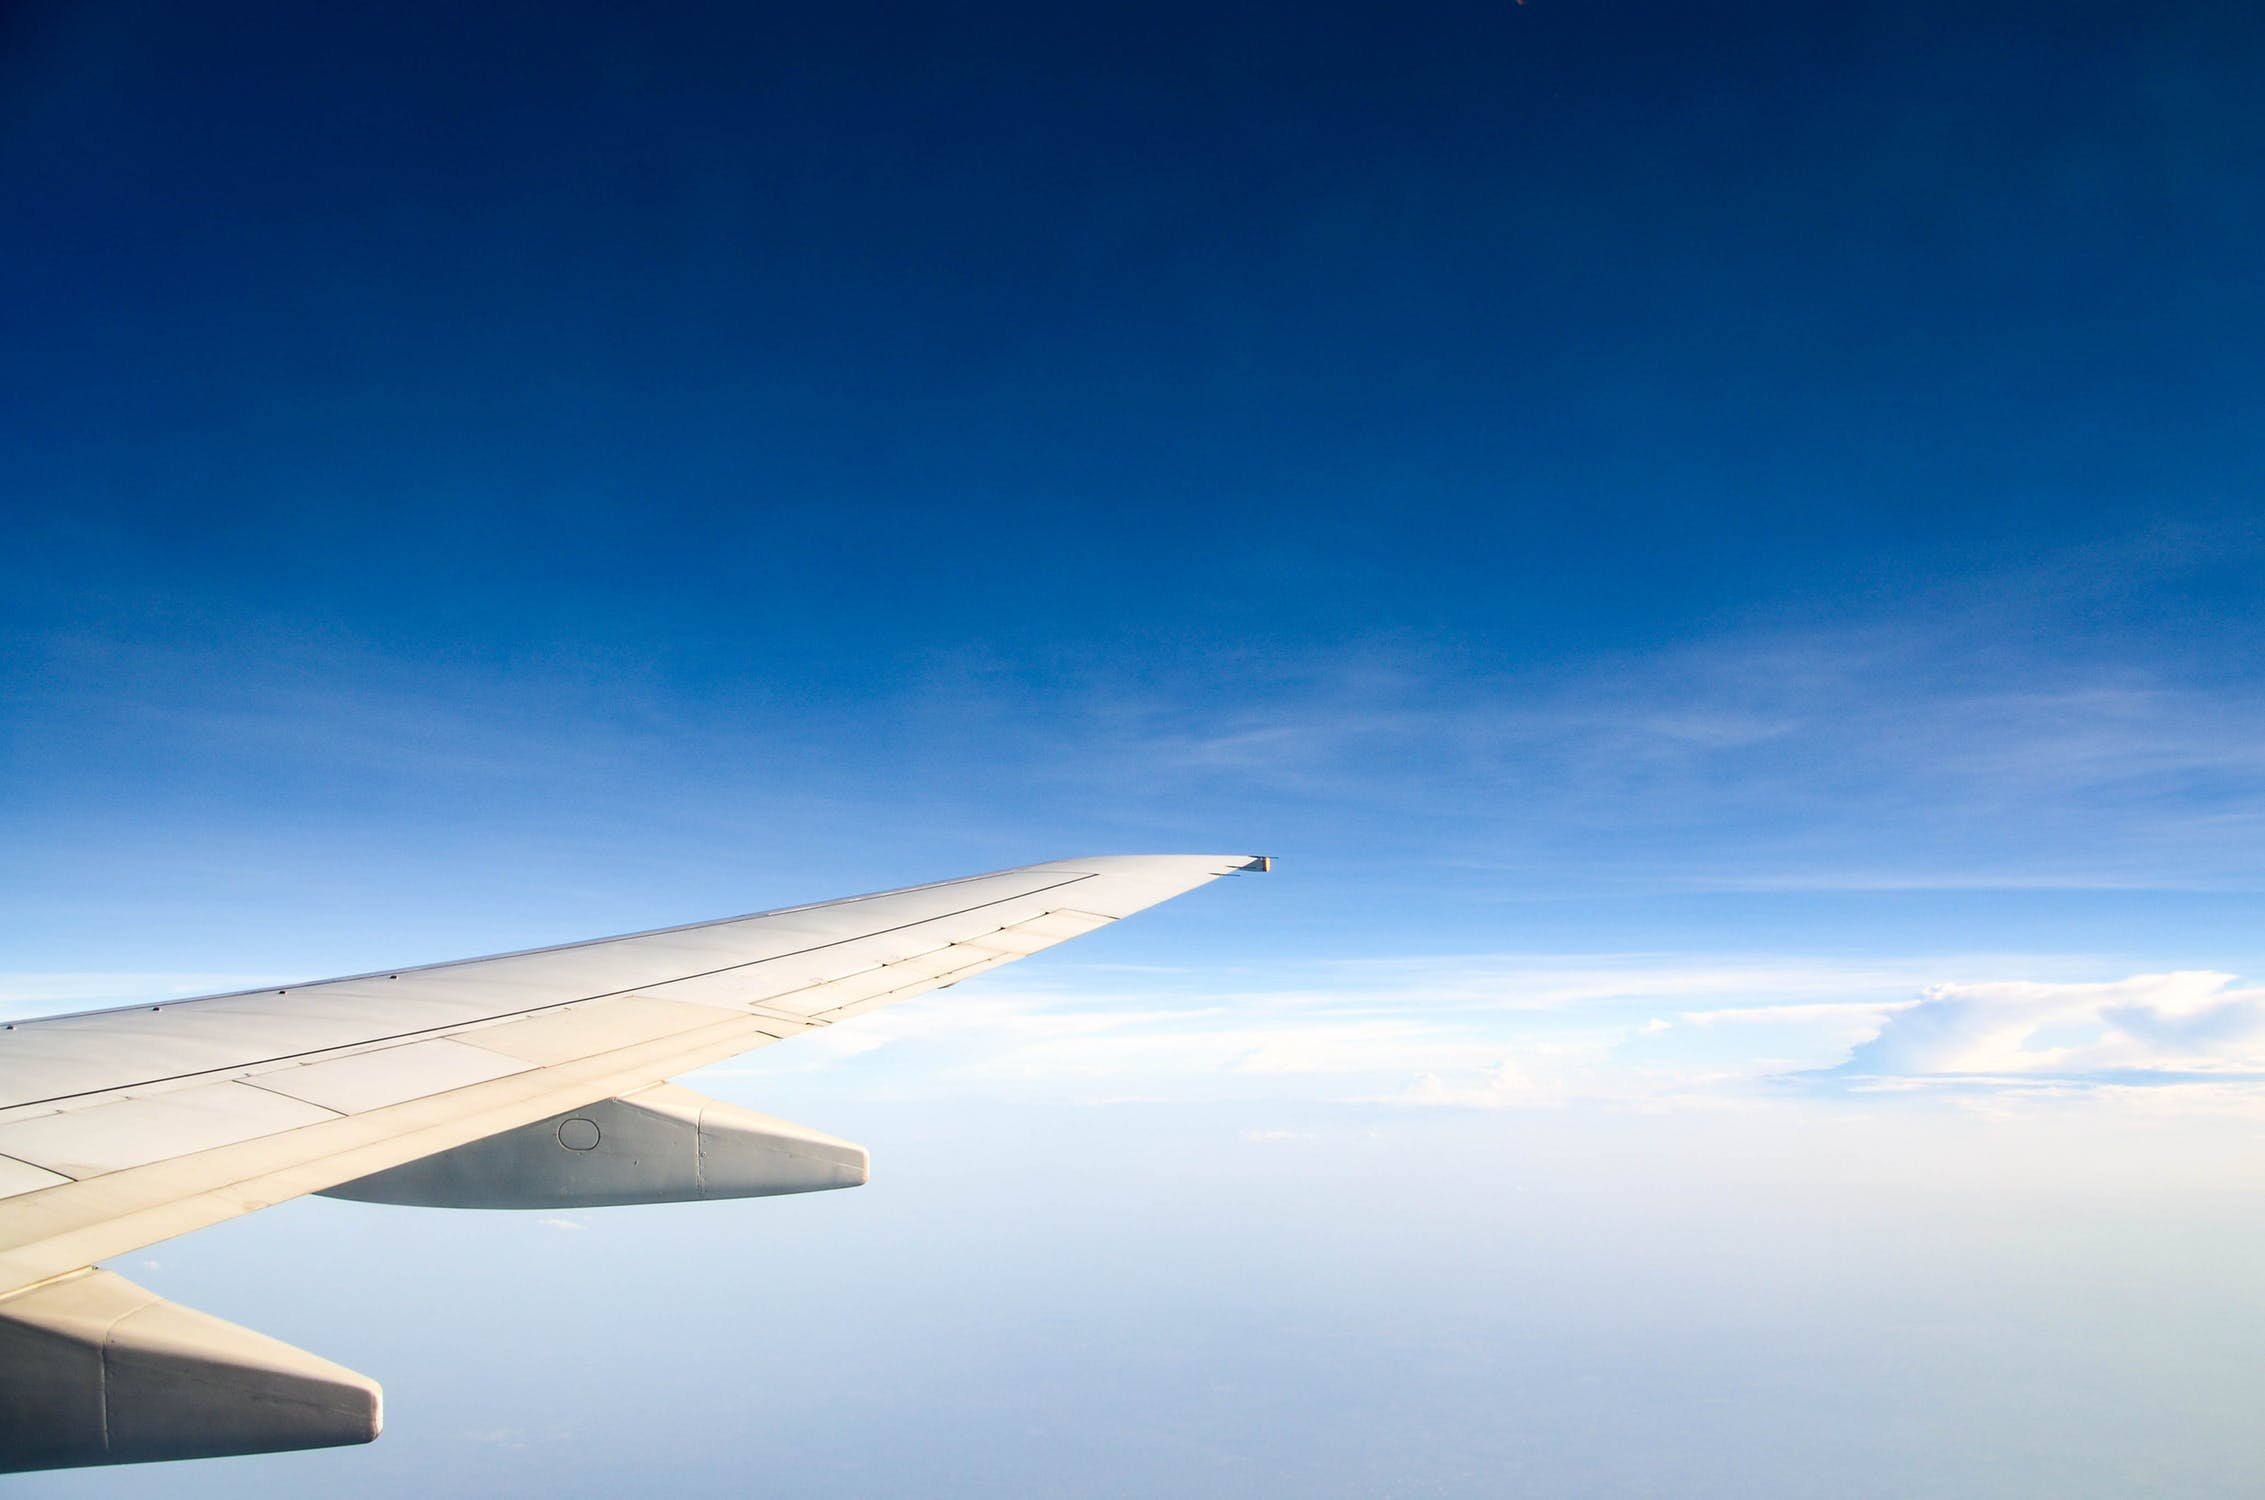 pexels photo 1056528 - Is It Possible to Achieve a Climate-friendly Air Travel?